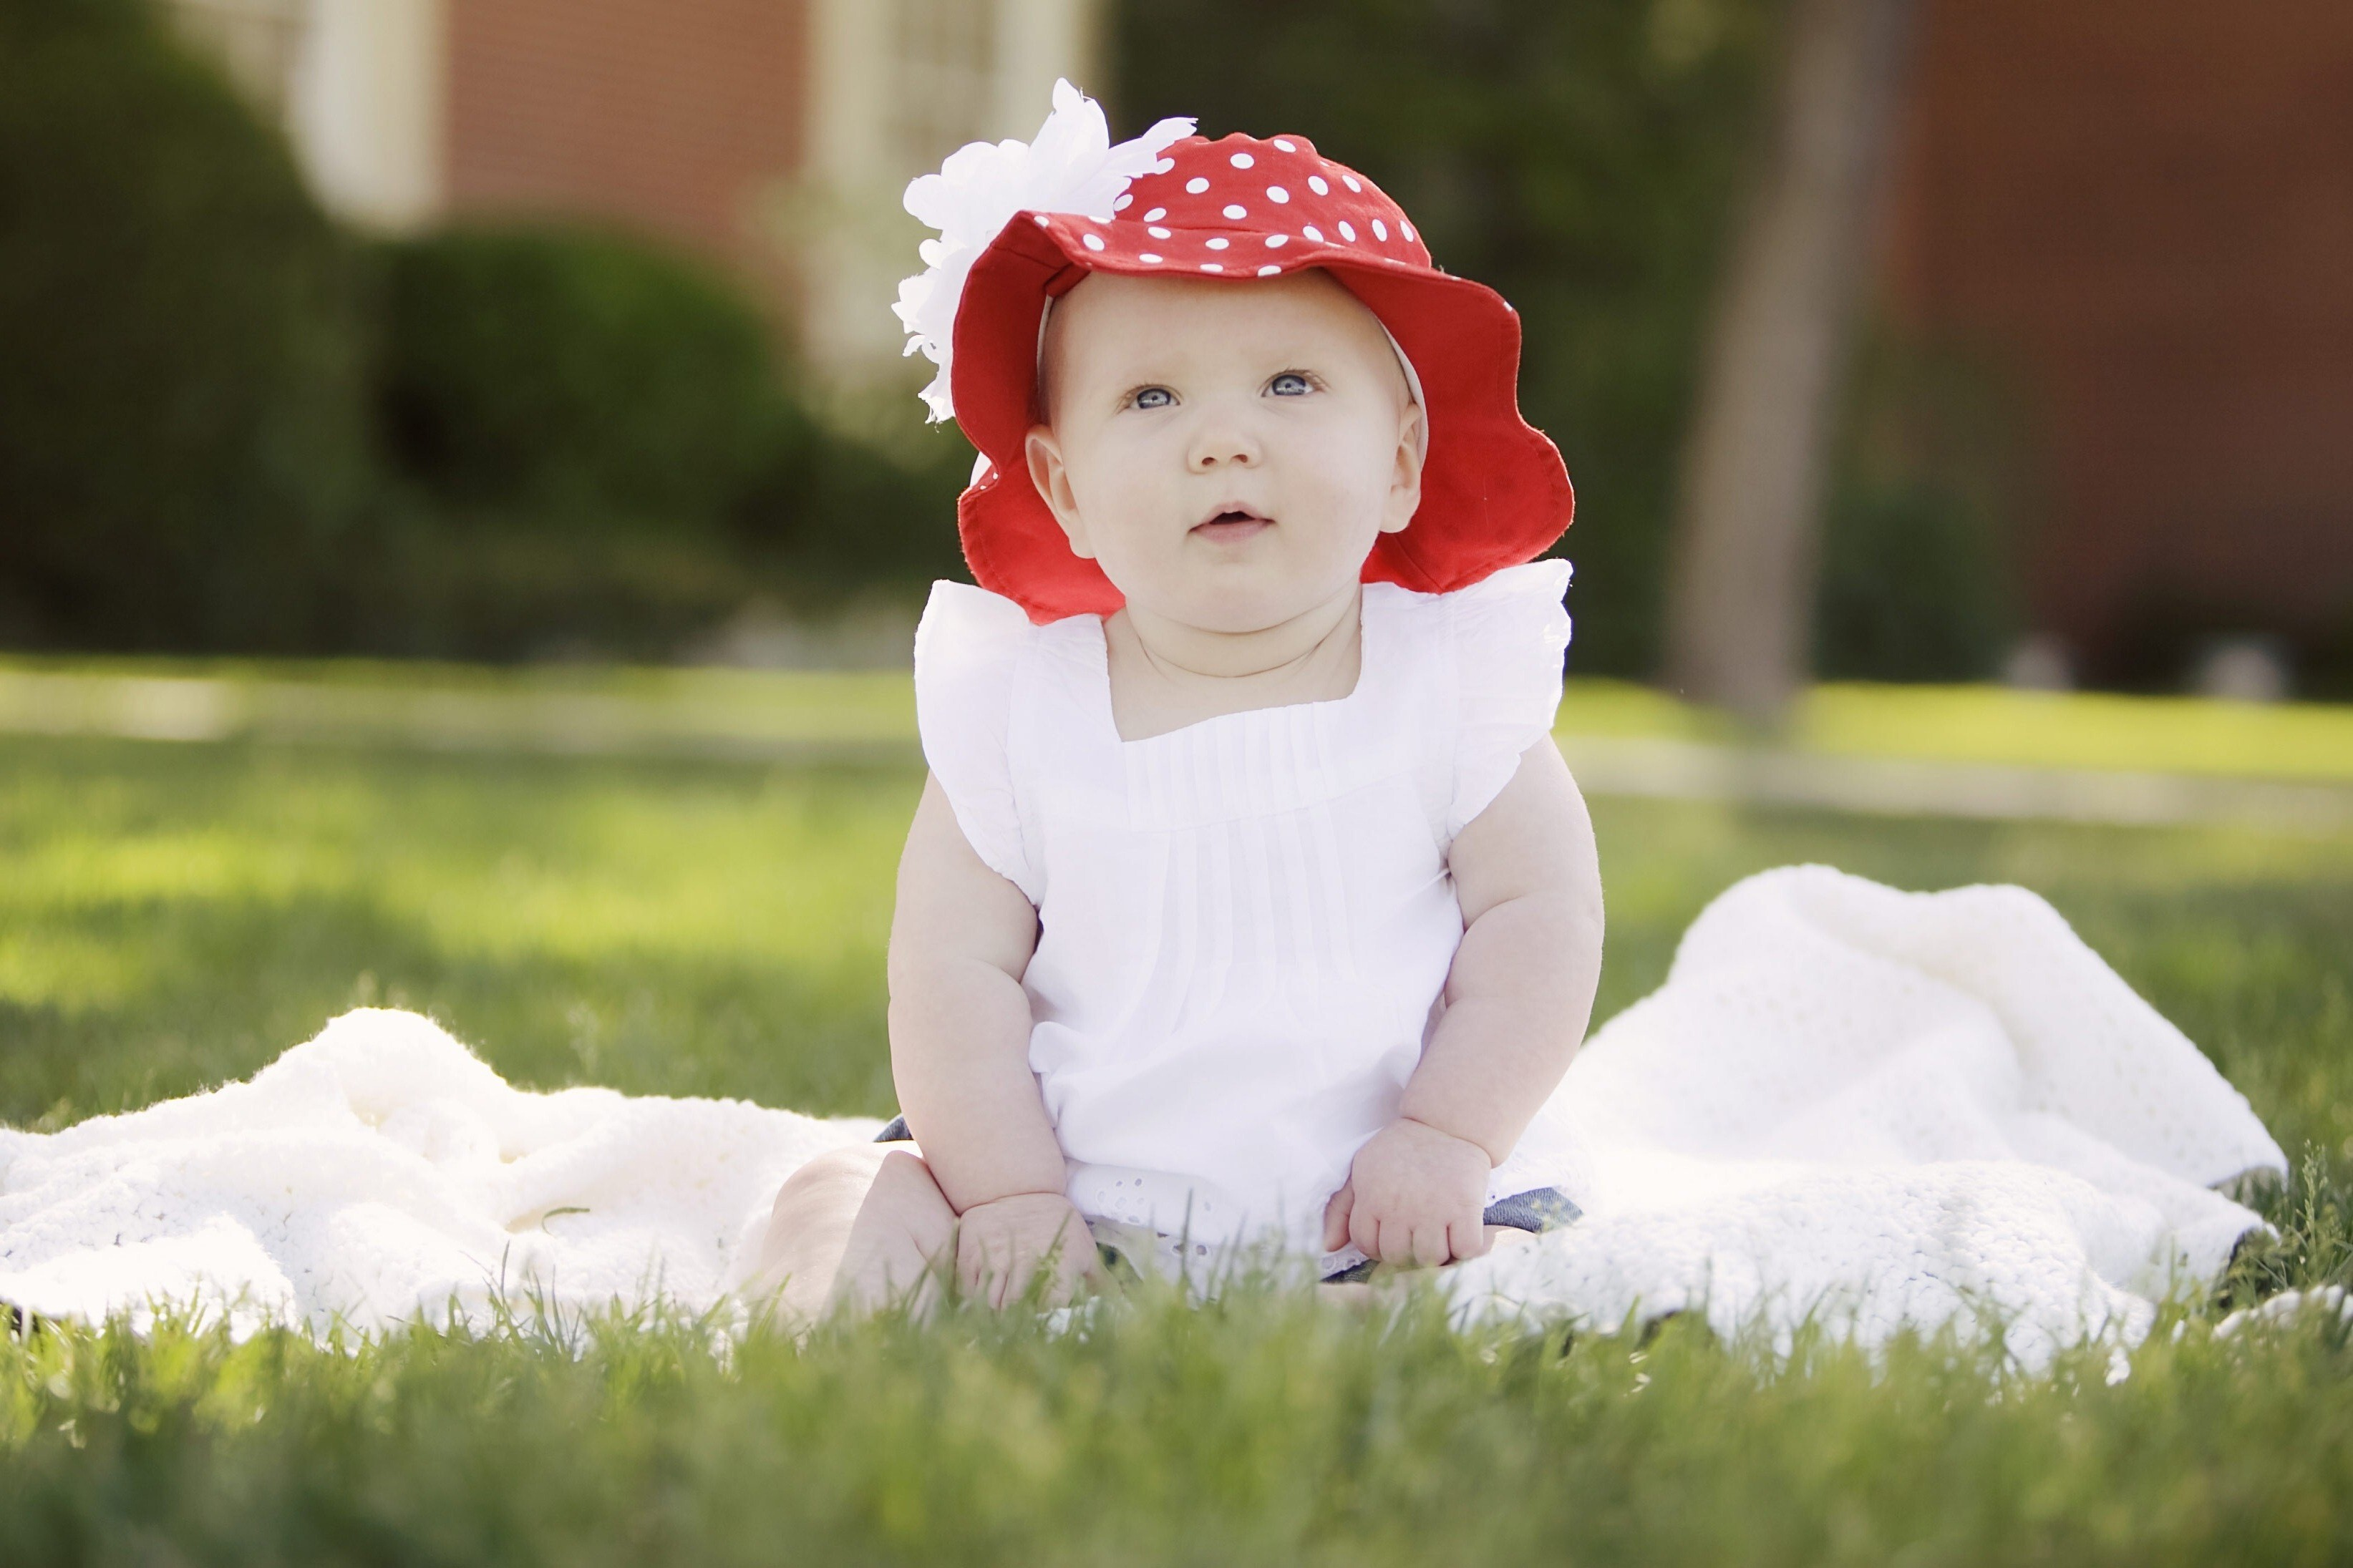 Beautiful Cute Baby Girl Hd Wallpapers Hd Wallpapers